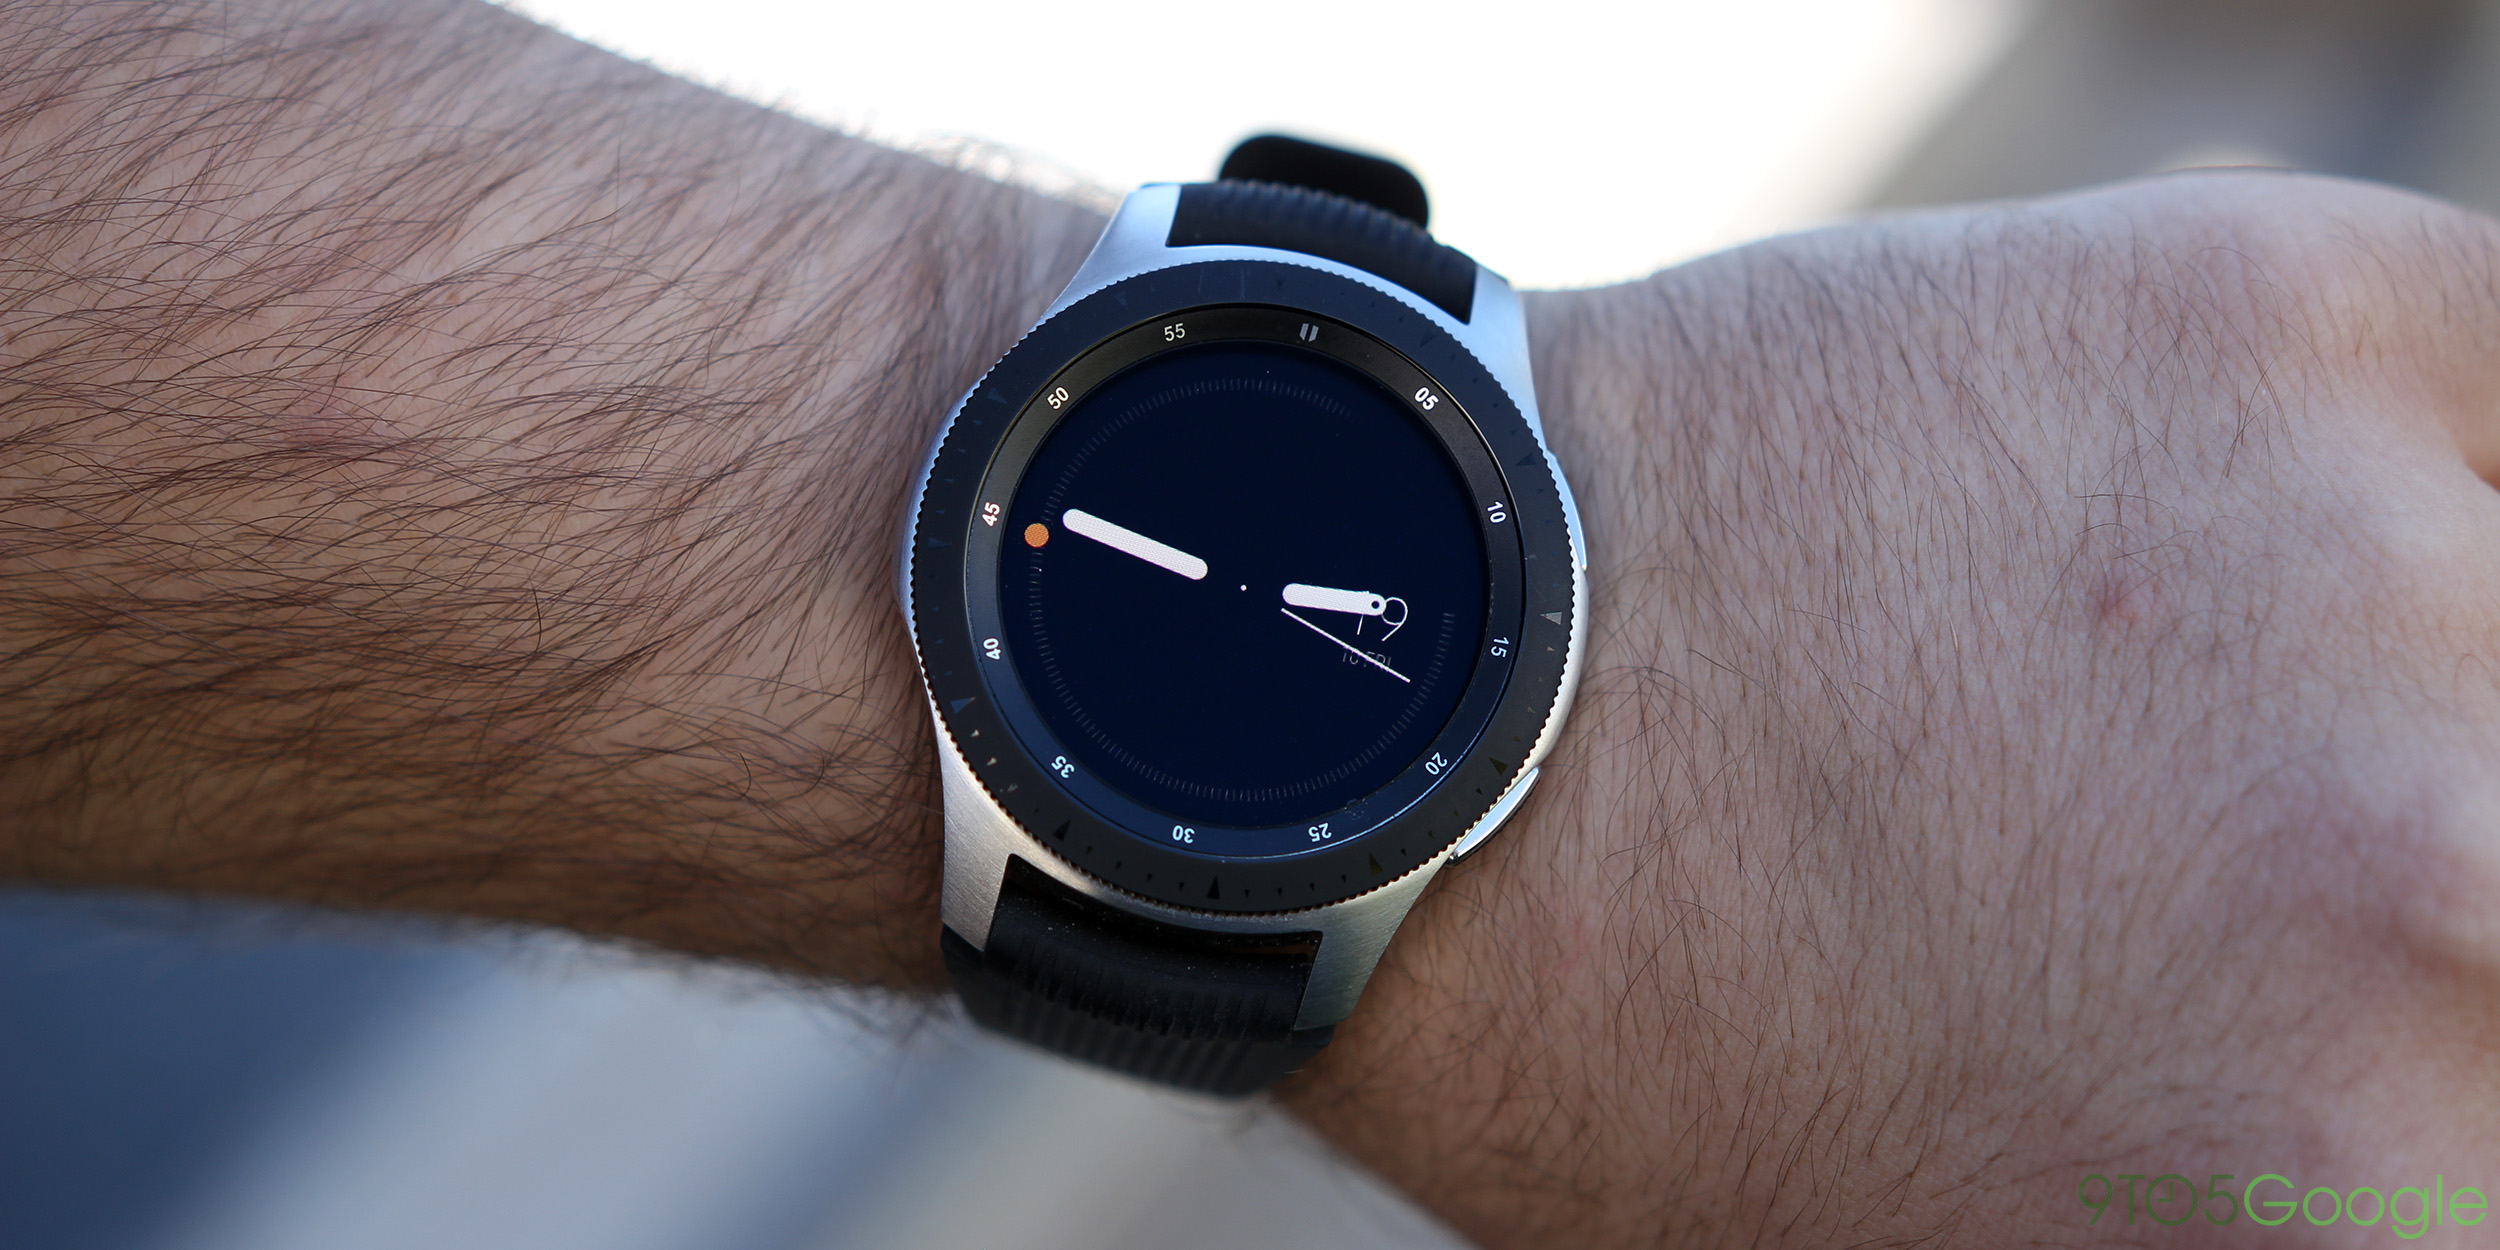 Where Best Android Smartwatches: Wear OS, Samsung, more - 9to5Google